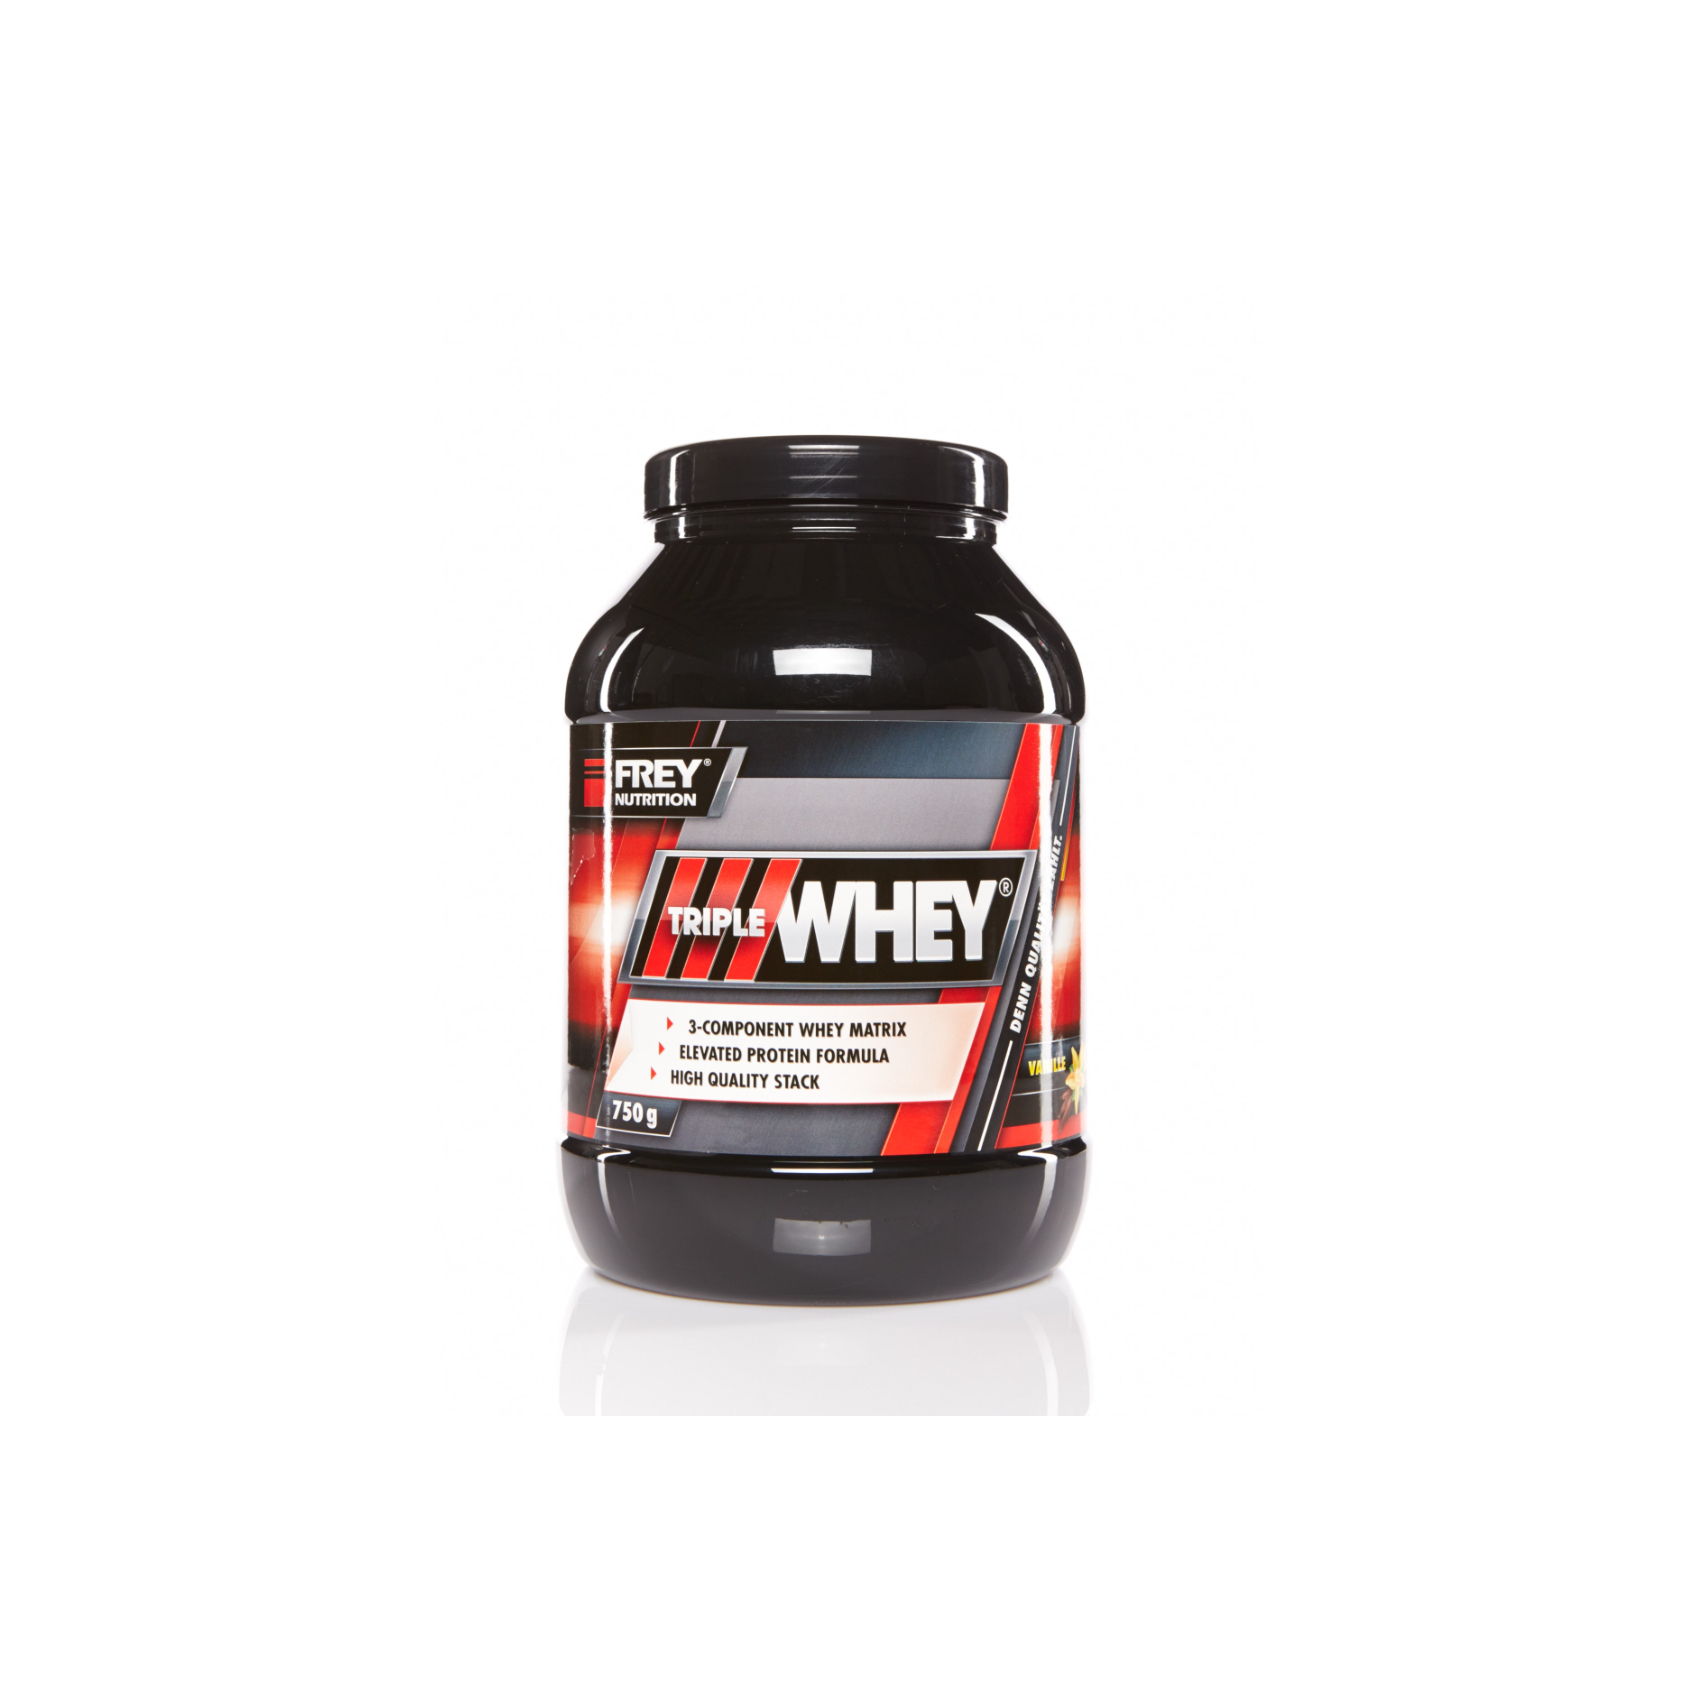 FREY NUTRITION Triple Whey 500g/Vanille